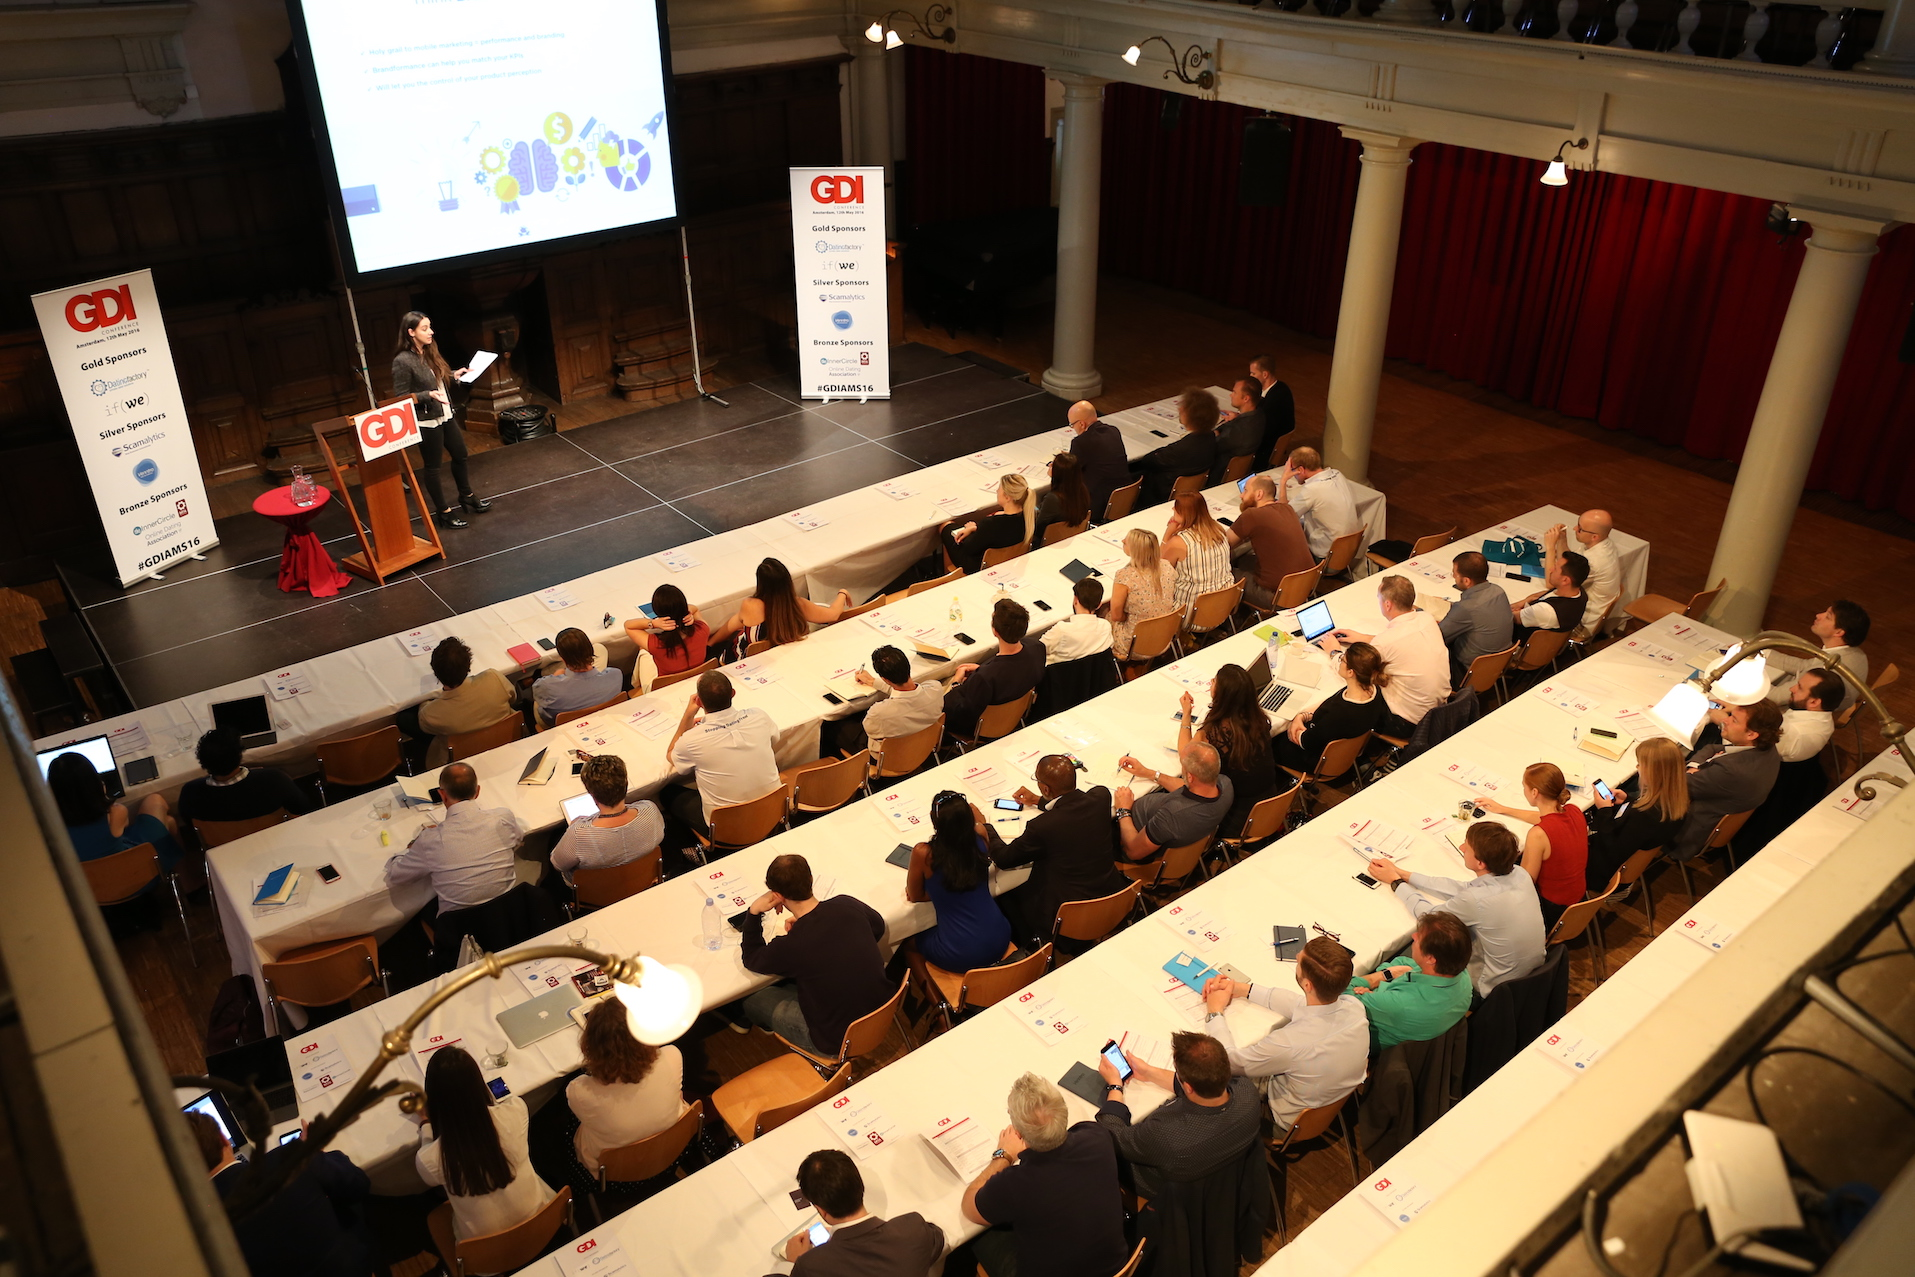 IF YOU MISSED IT: Watch The  Official Video For GDI Amsterdam Conference